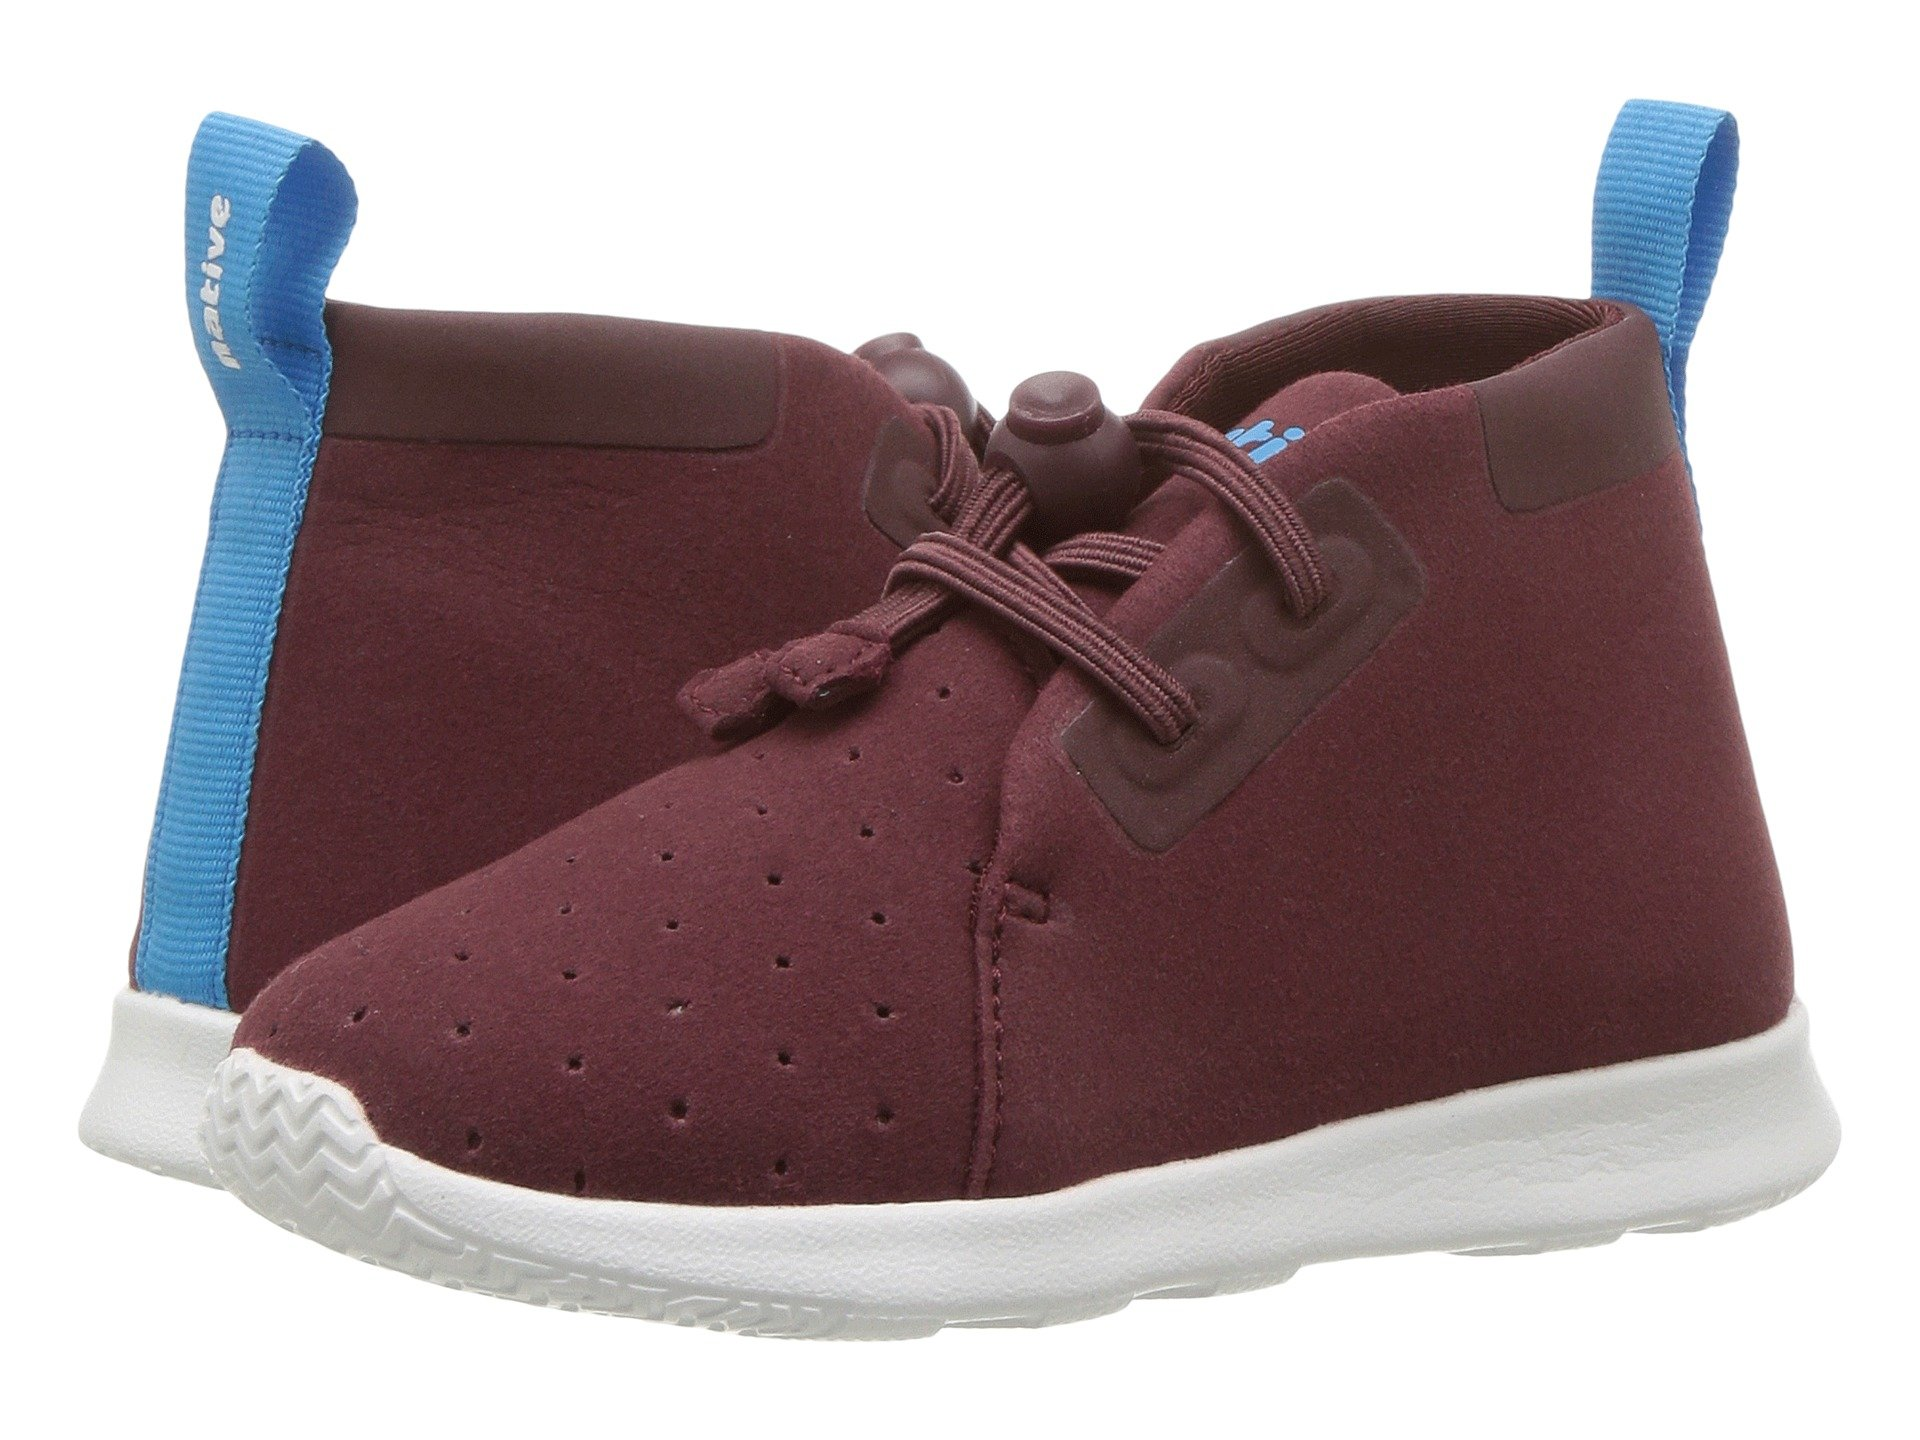 Sneakers \u0026 Athletic Shoes, Brown, Girls | Shipped Free at Zappos